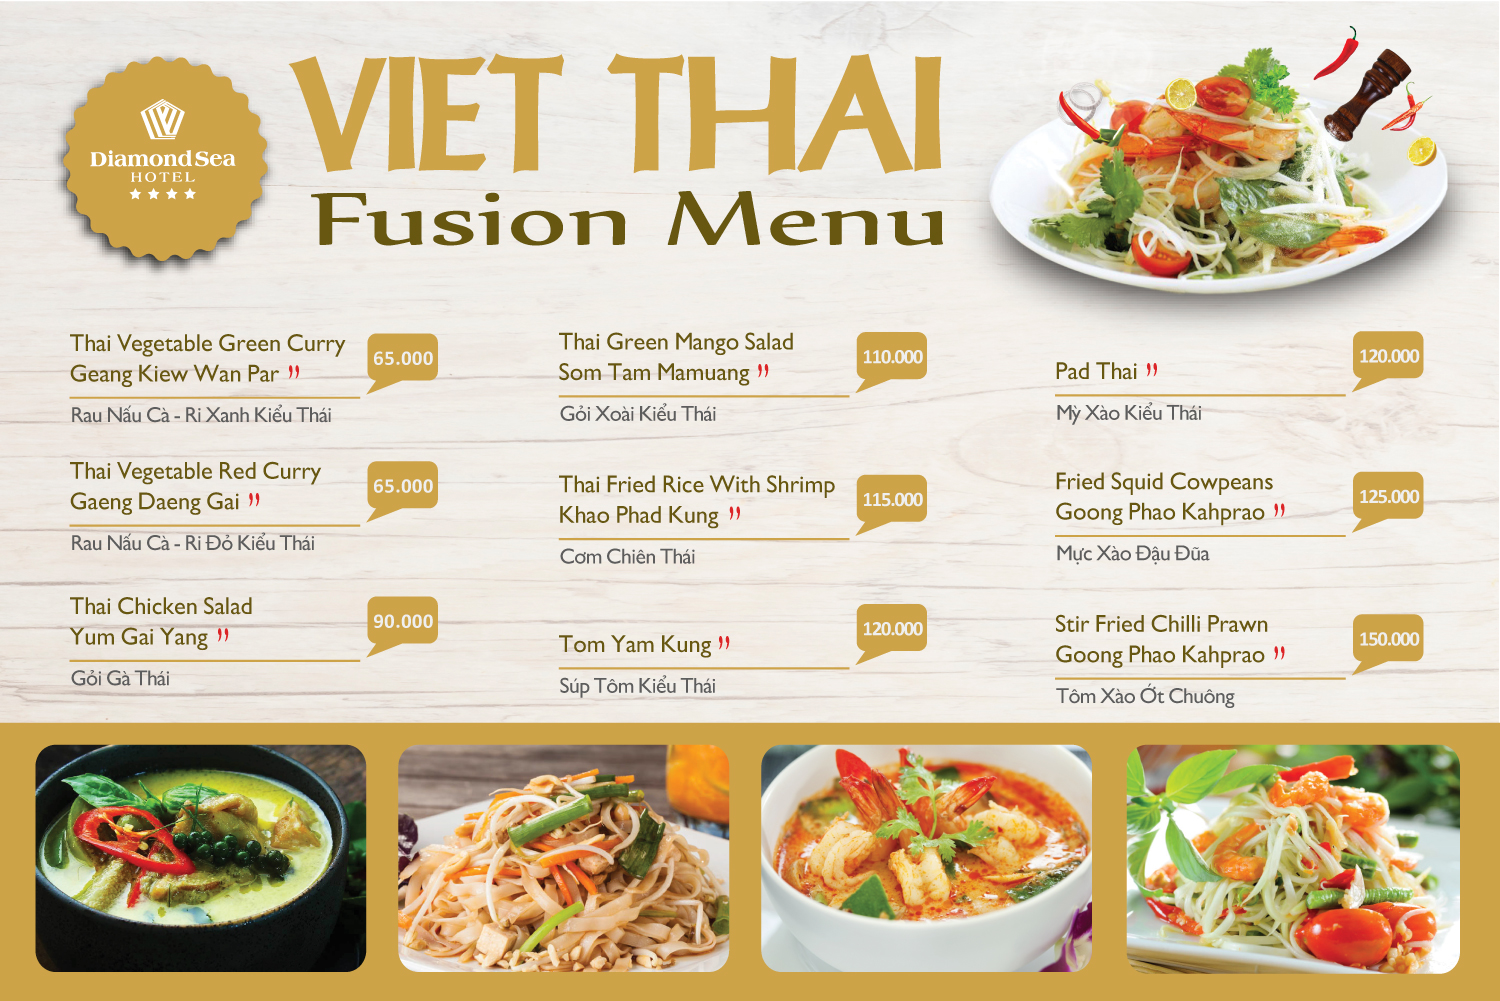 Get lost in the Golden Pagoda Land with special Thai menu at Diamond Sea